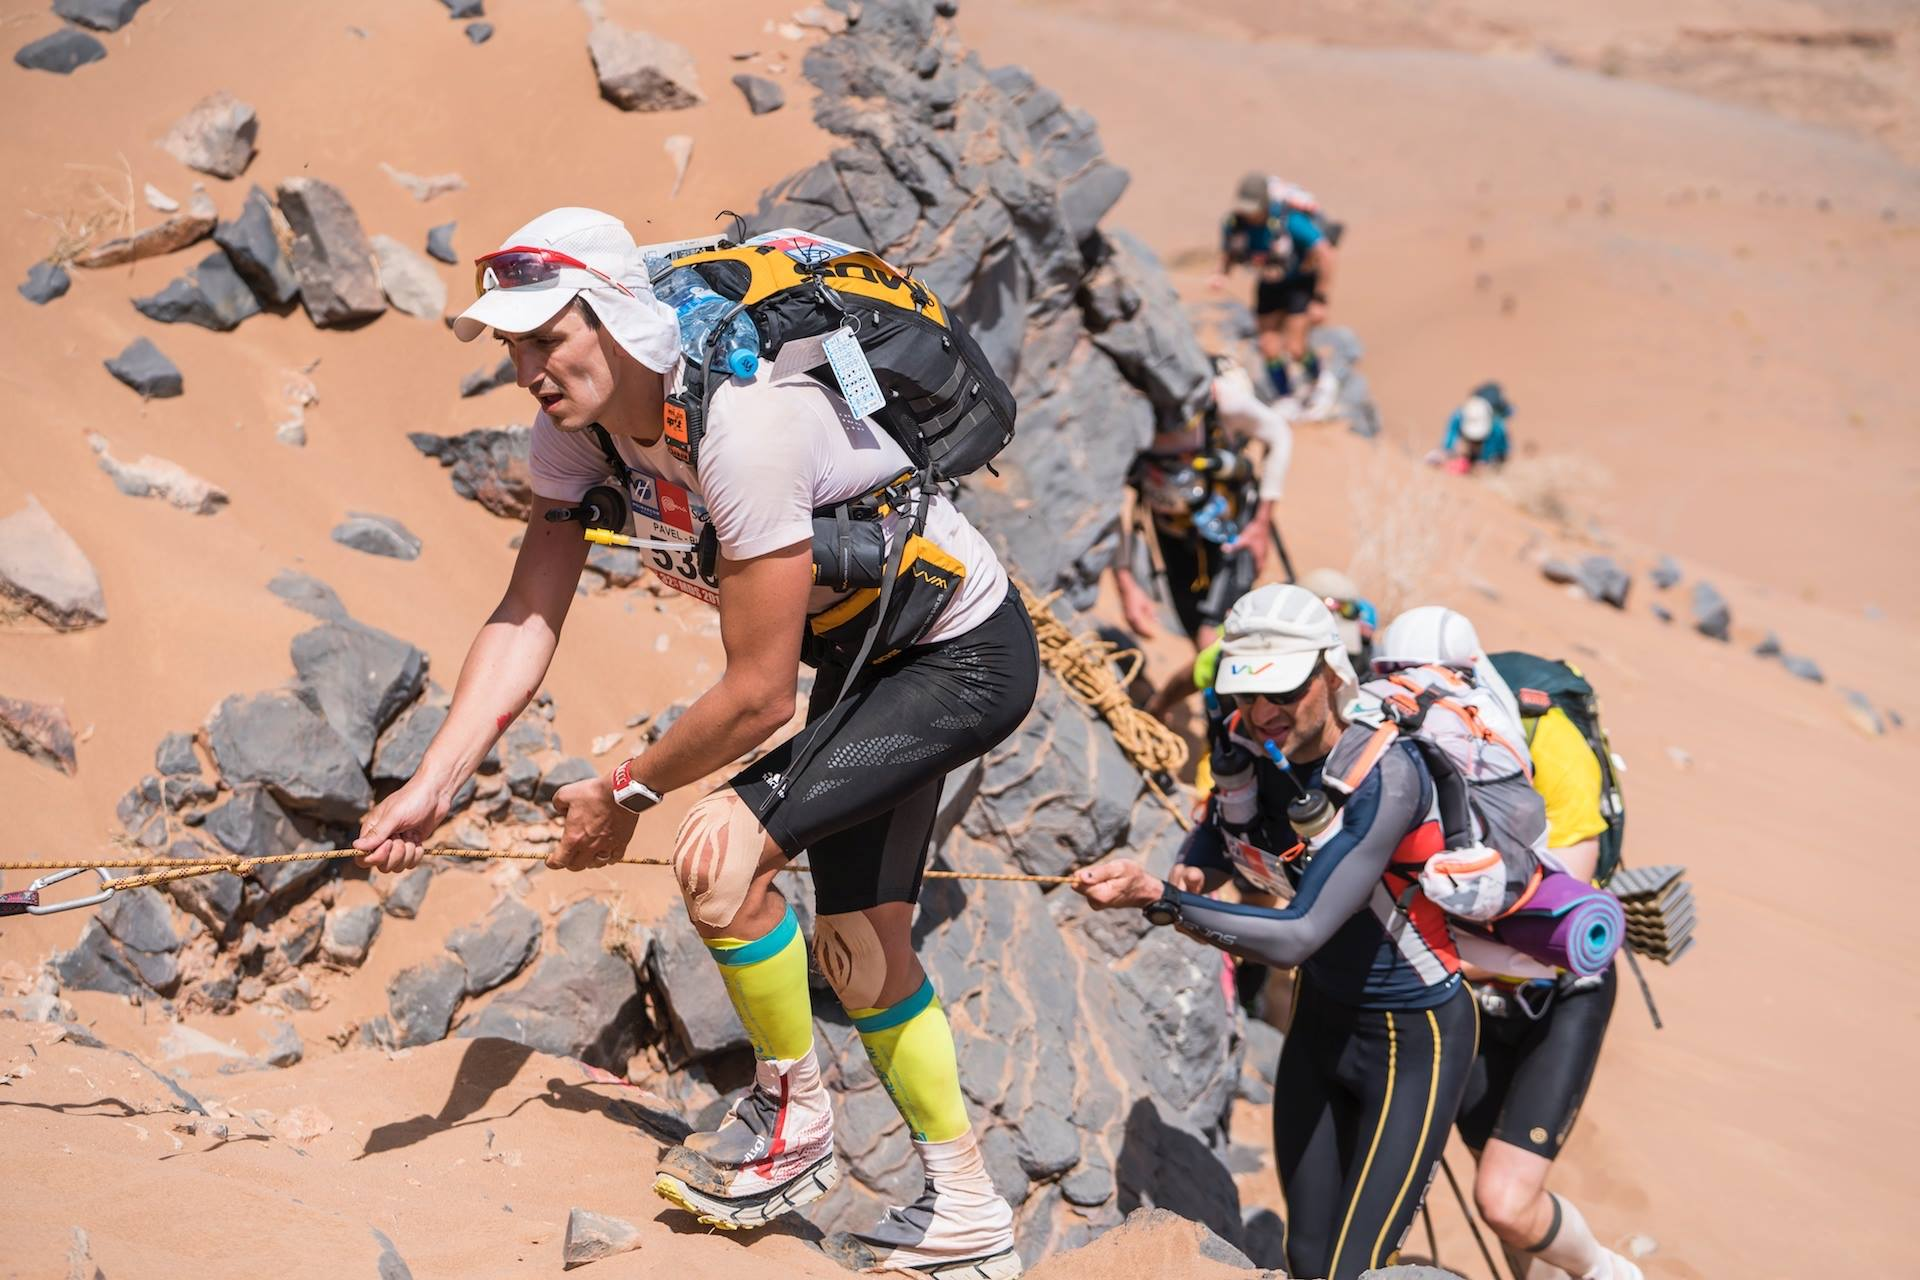 17880465 1622189027793691 8122523713387417952 o - RESULTATS, PHOTOS ET VIDEO DU MARATHON DES SABLES 17-04-2017